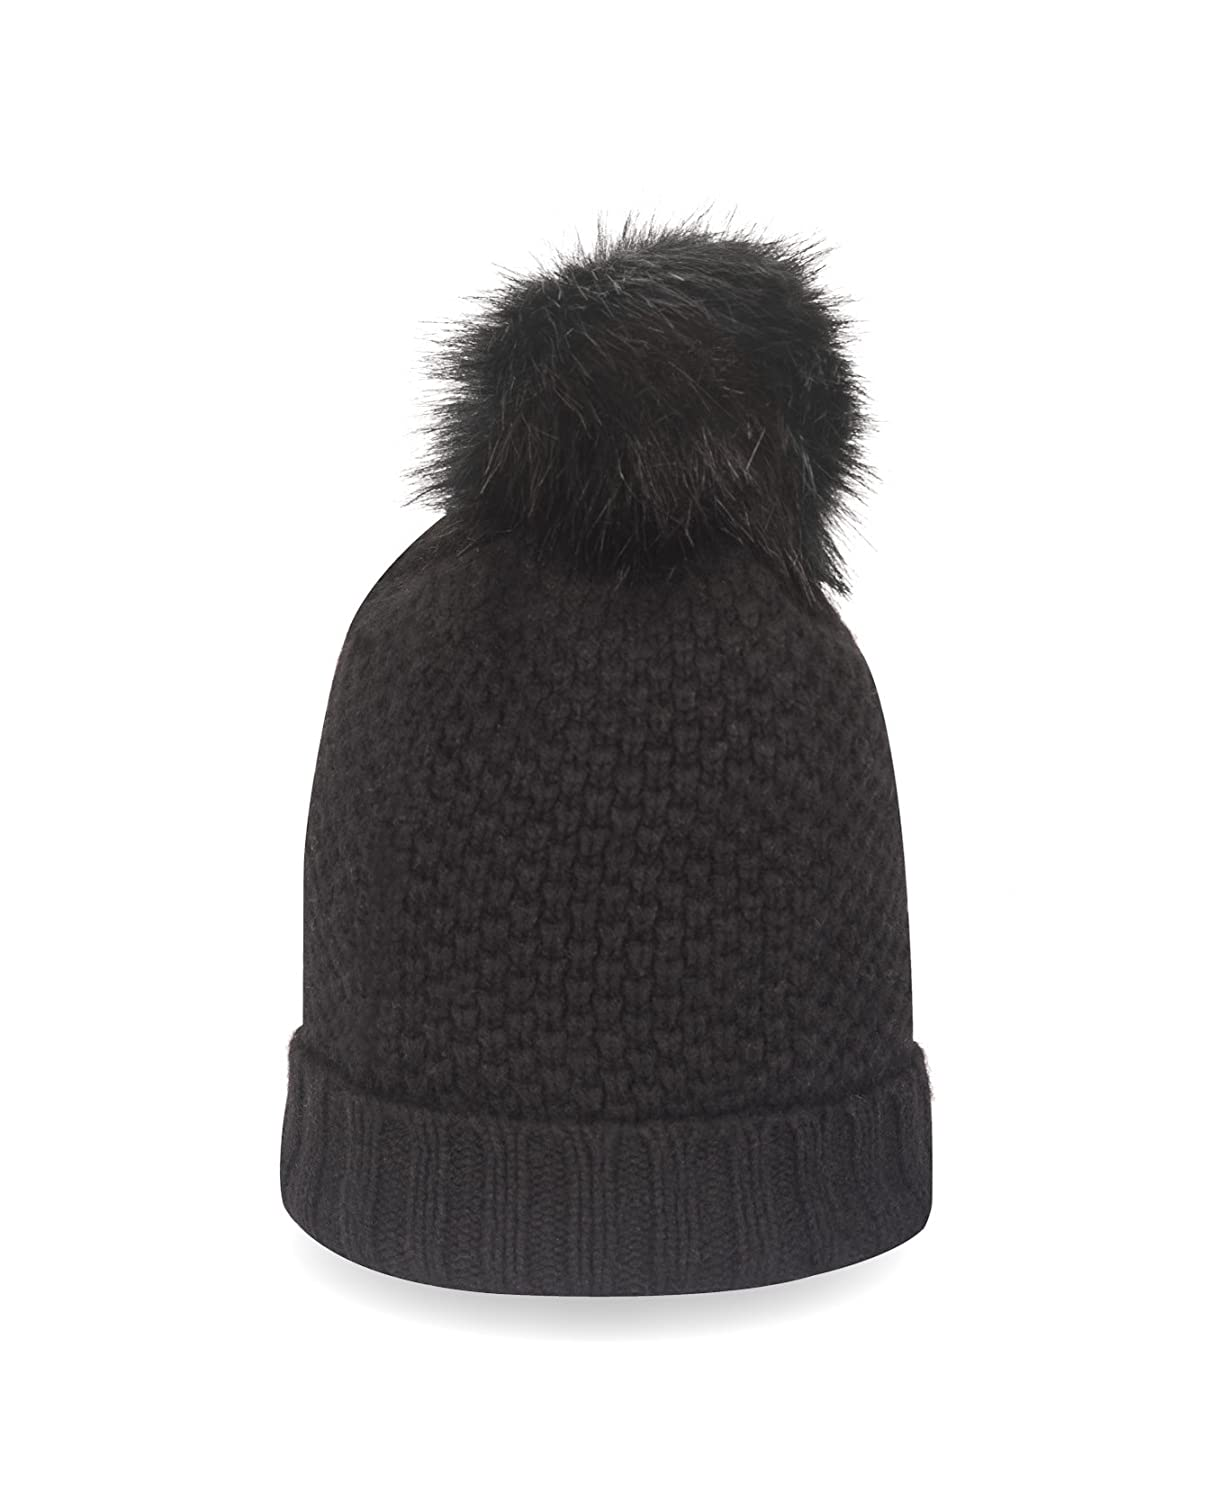 03be282bb22 CASH-MERE.CH 100% Cashmere Winter Hat